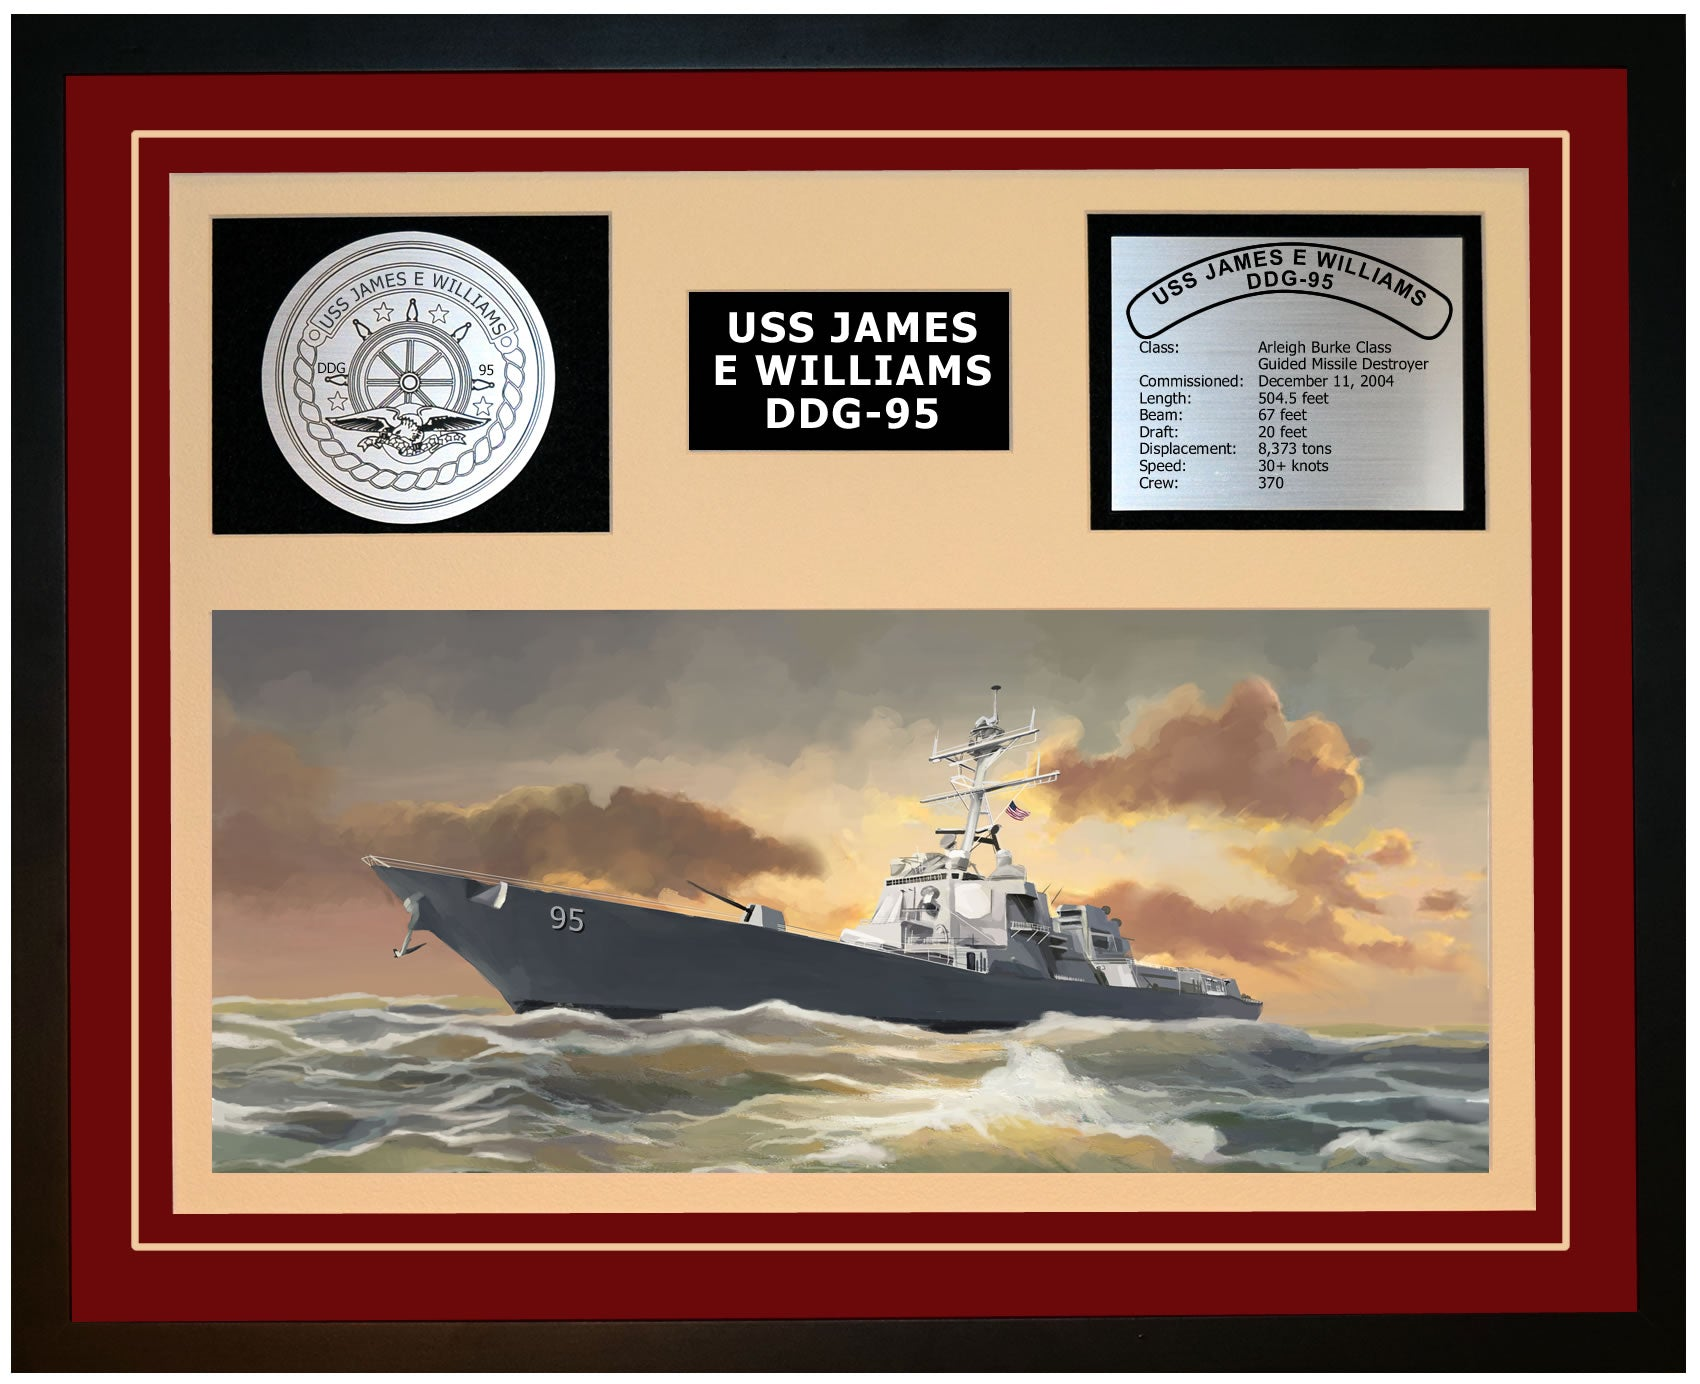 USS JAMES E WILLIAMS DDG-95 Framed Navy Ship Display Burgundy